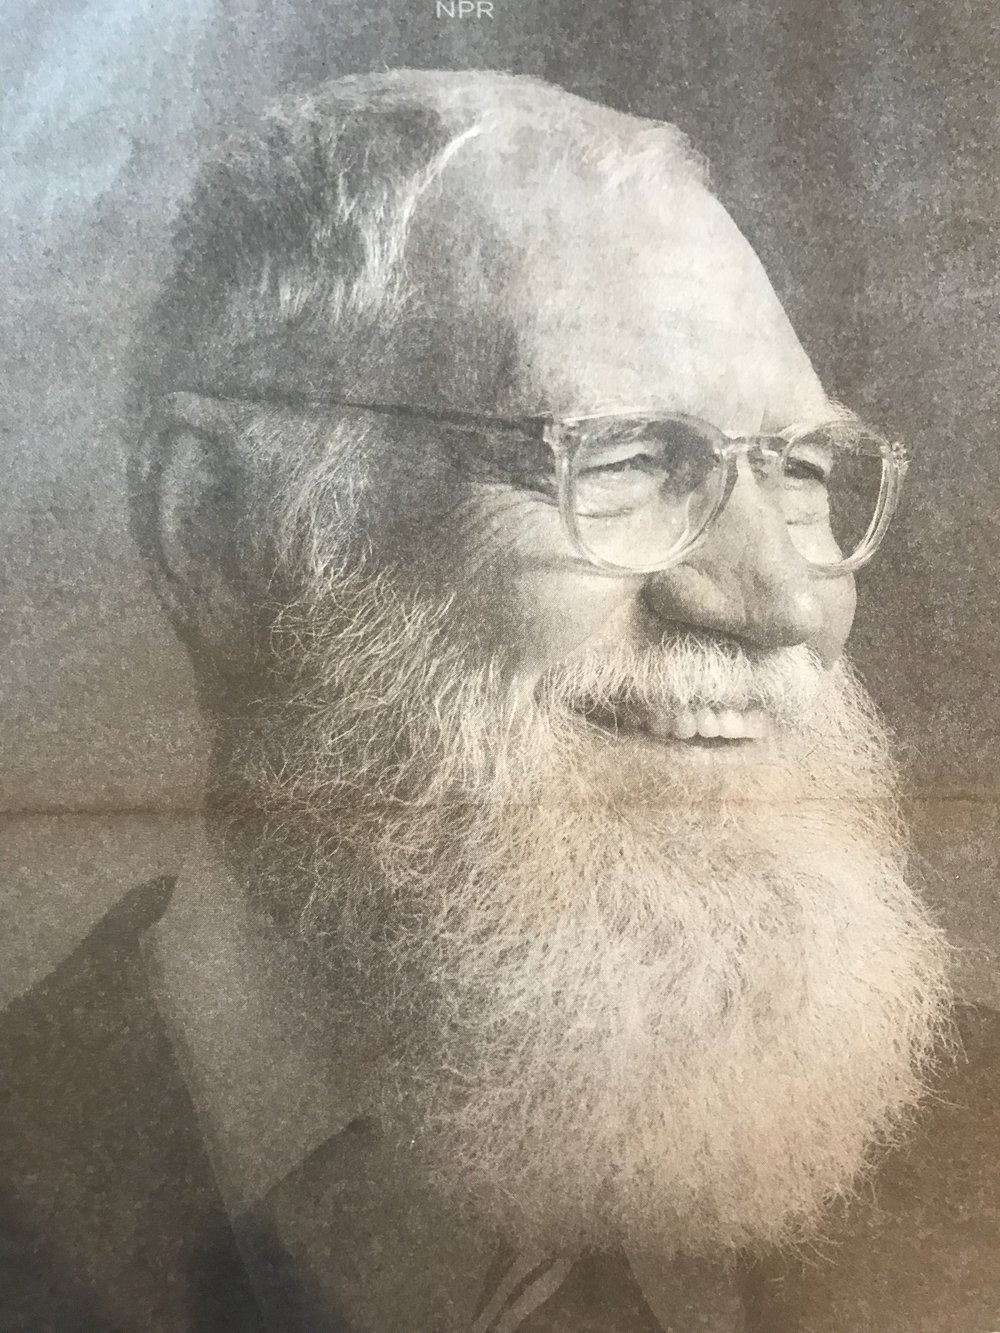 David Letterman, tv personality, retired to grow a beard and return as a tv personality with a beard, from a full pg. ad in The New York Times promoting a new David Letterman television show, August 8, 2018.